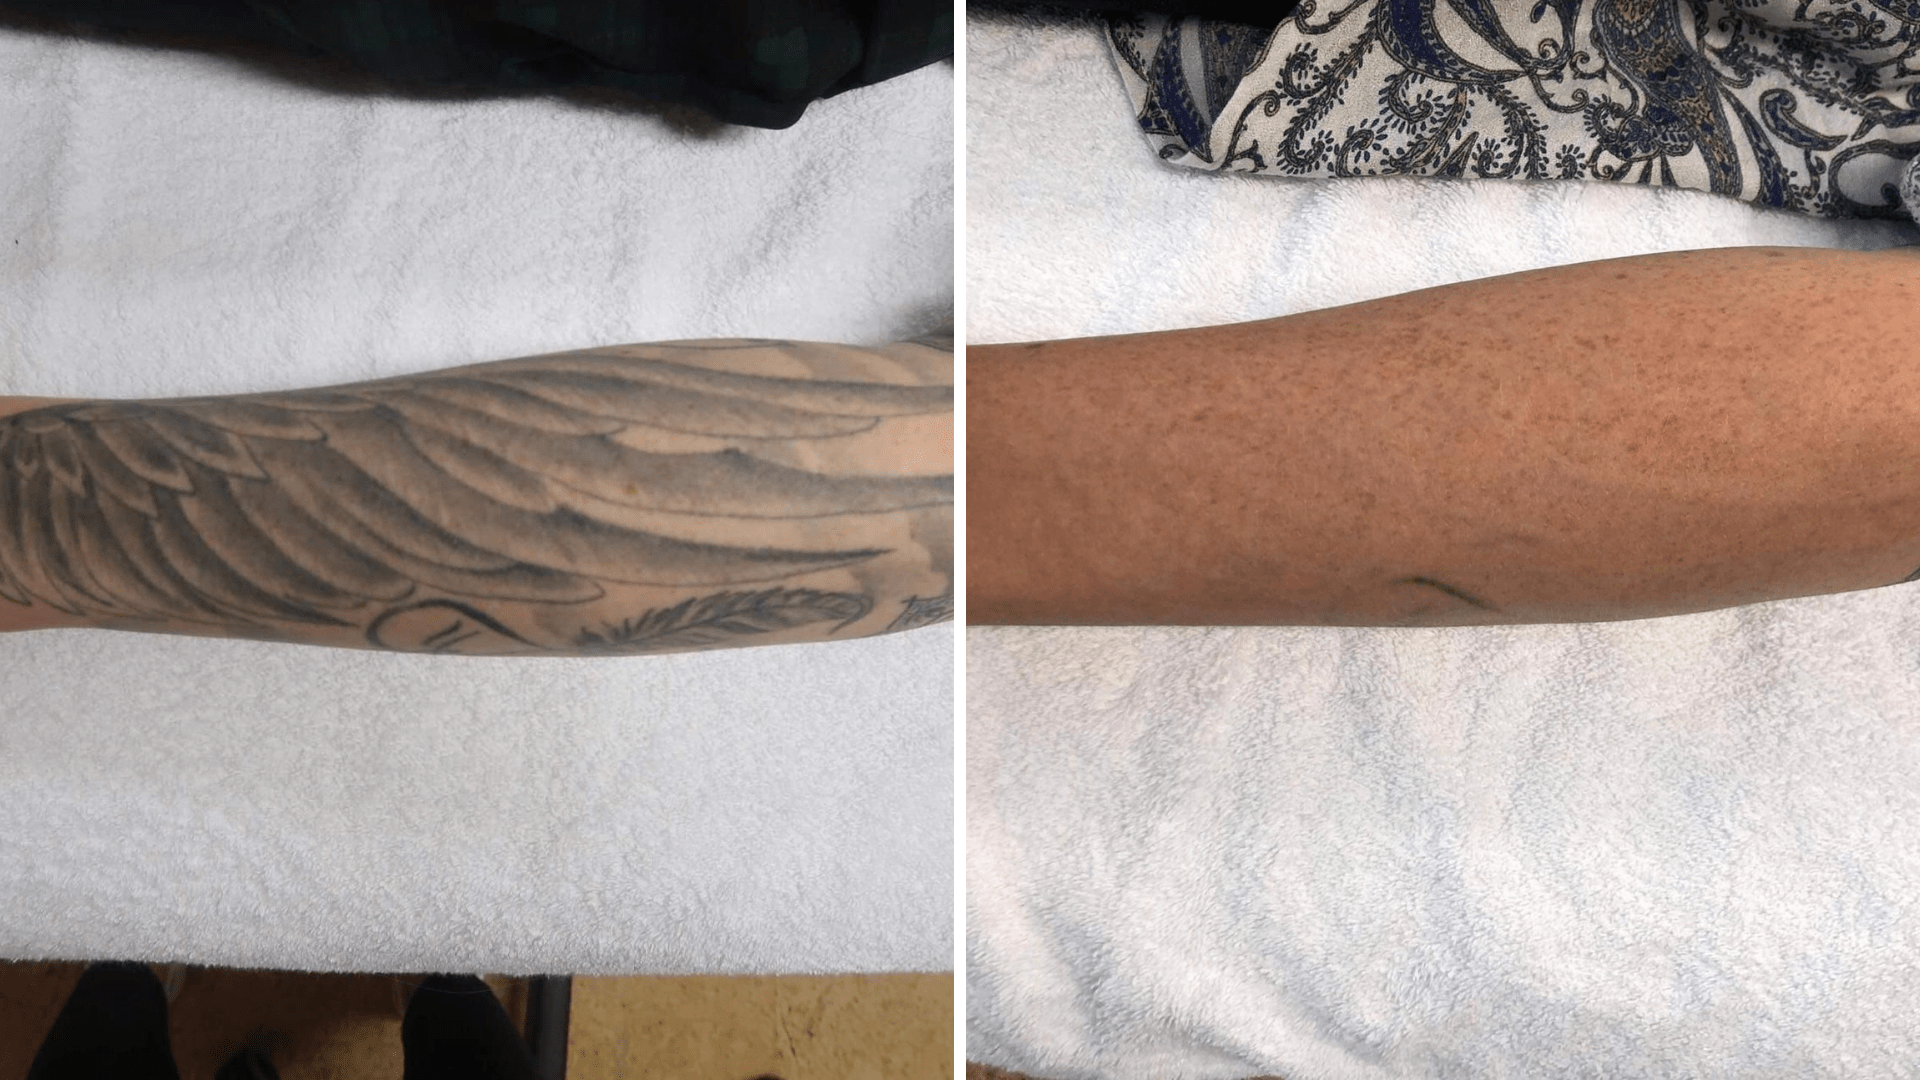 Skincenters tattooverwijdering